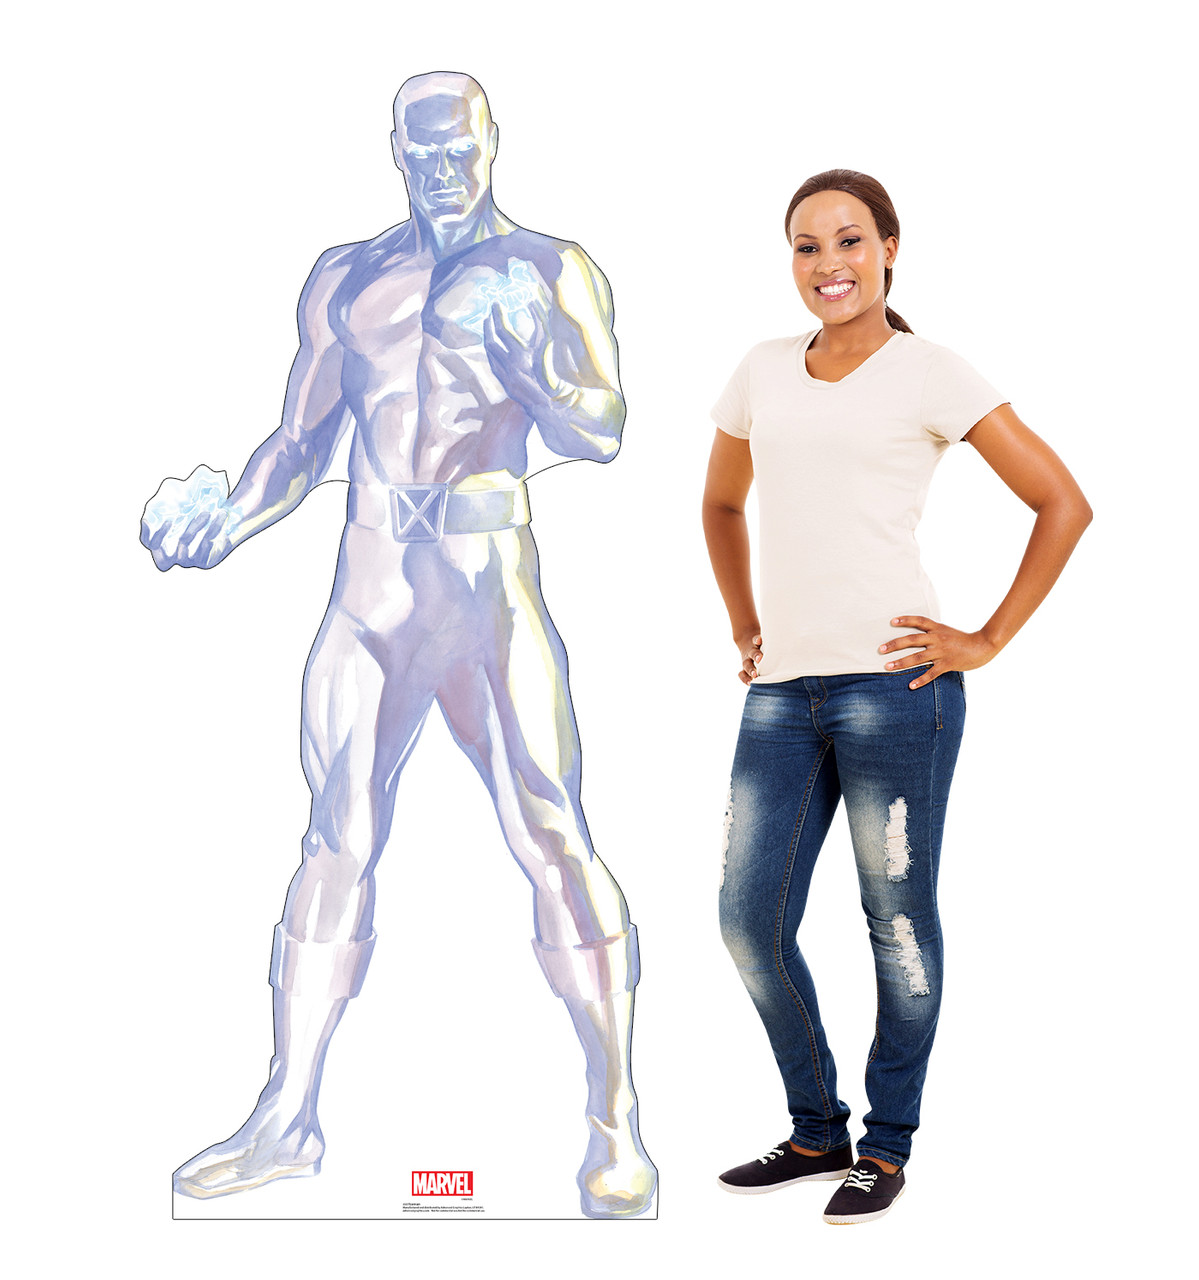 Life-size cardboard standee of Iceman from Marvels Timeless Collection with model.